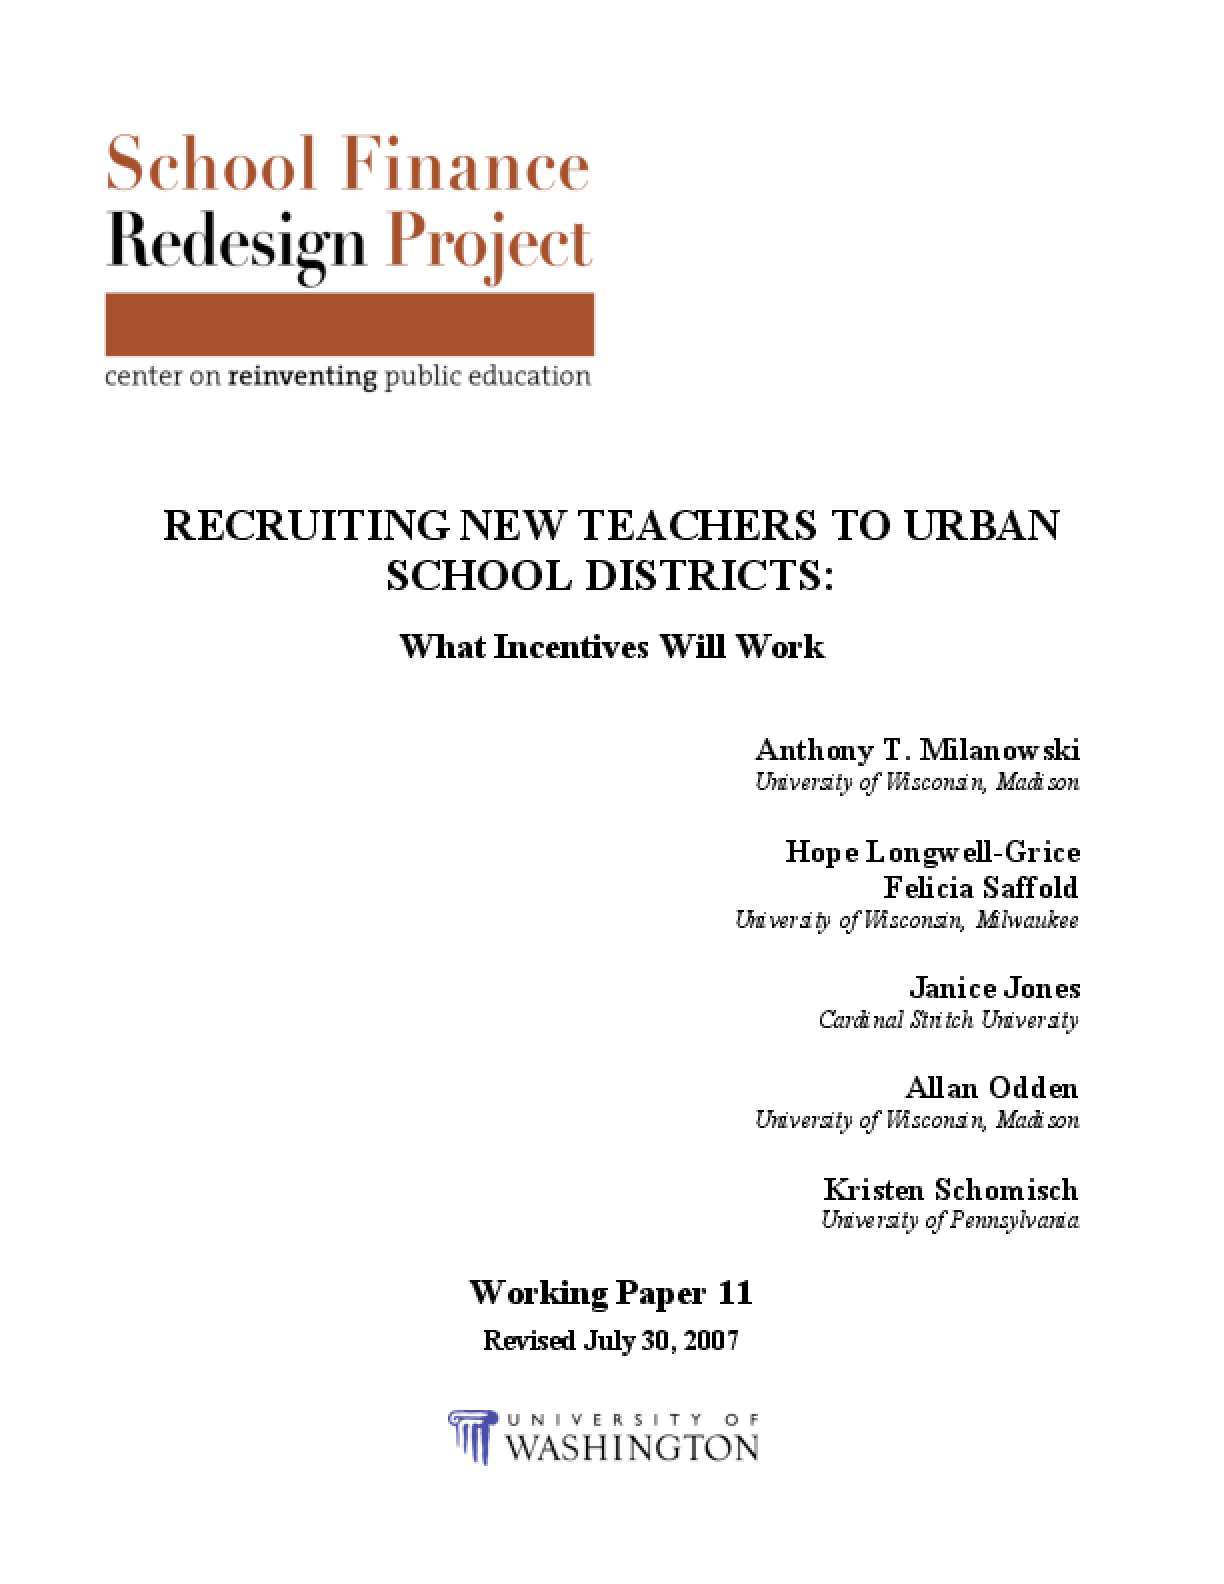 Recruiting New Teachers to Urban School Districts: What Incentives Will Work